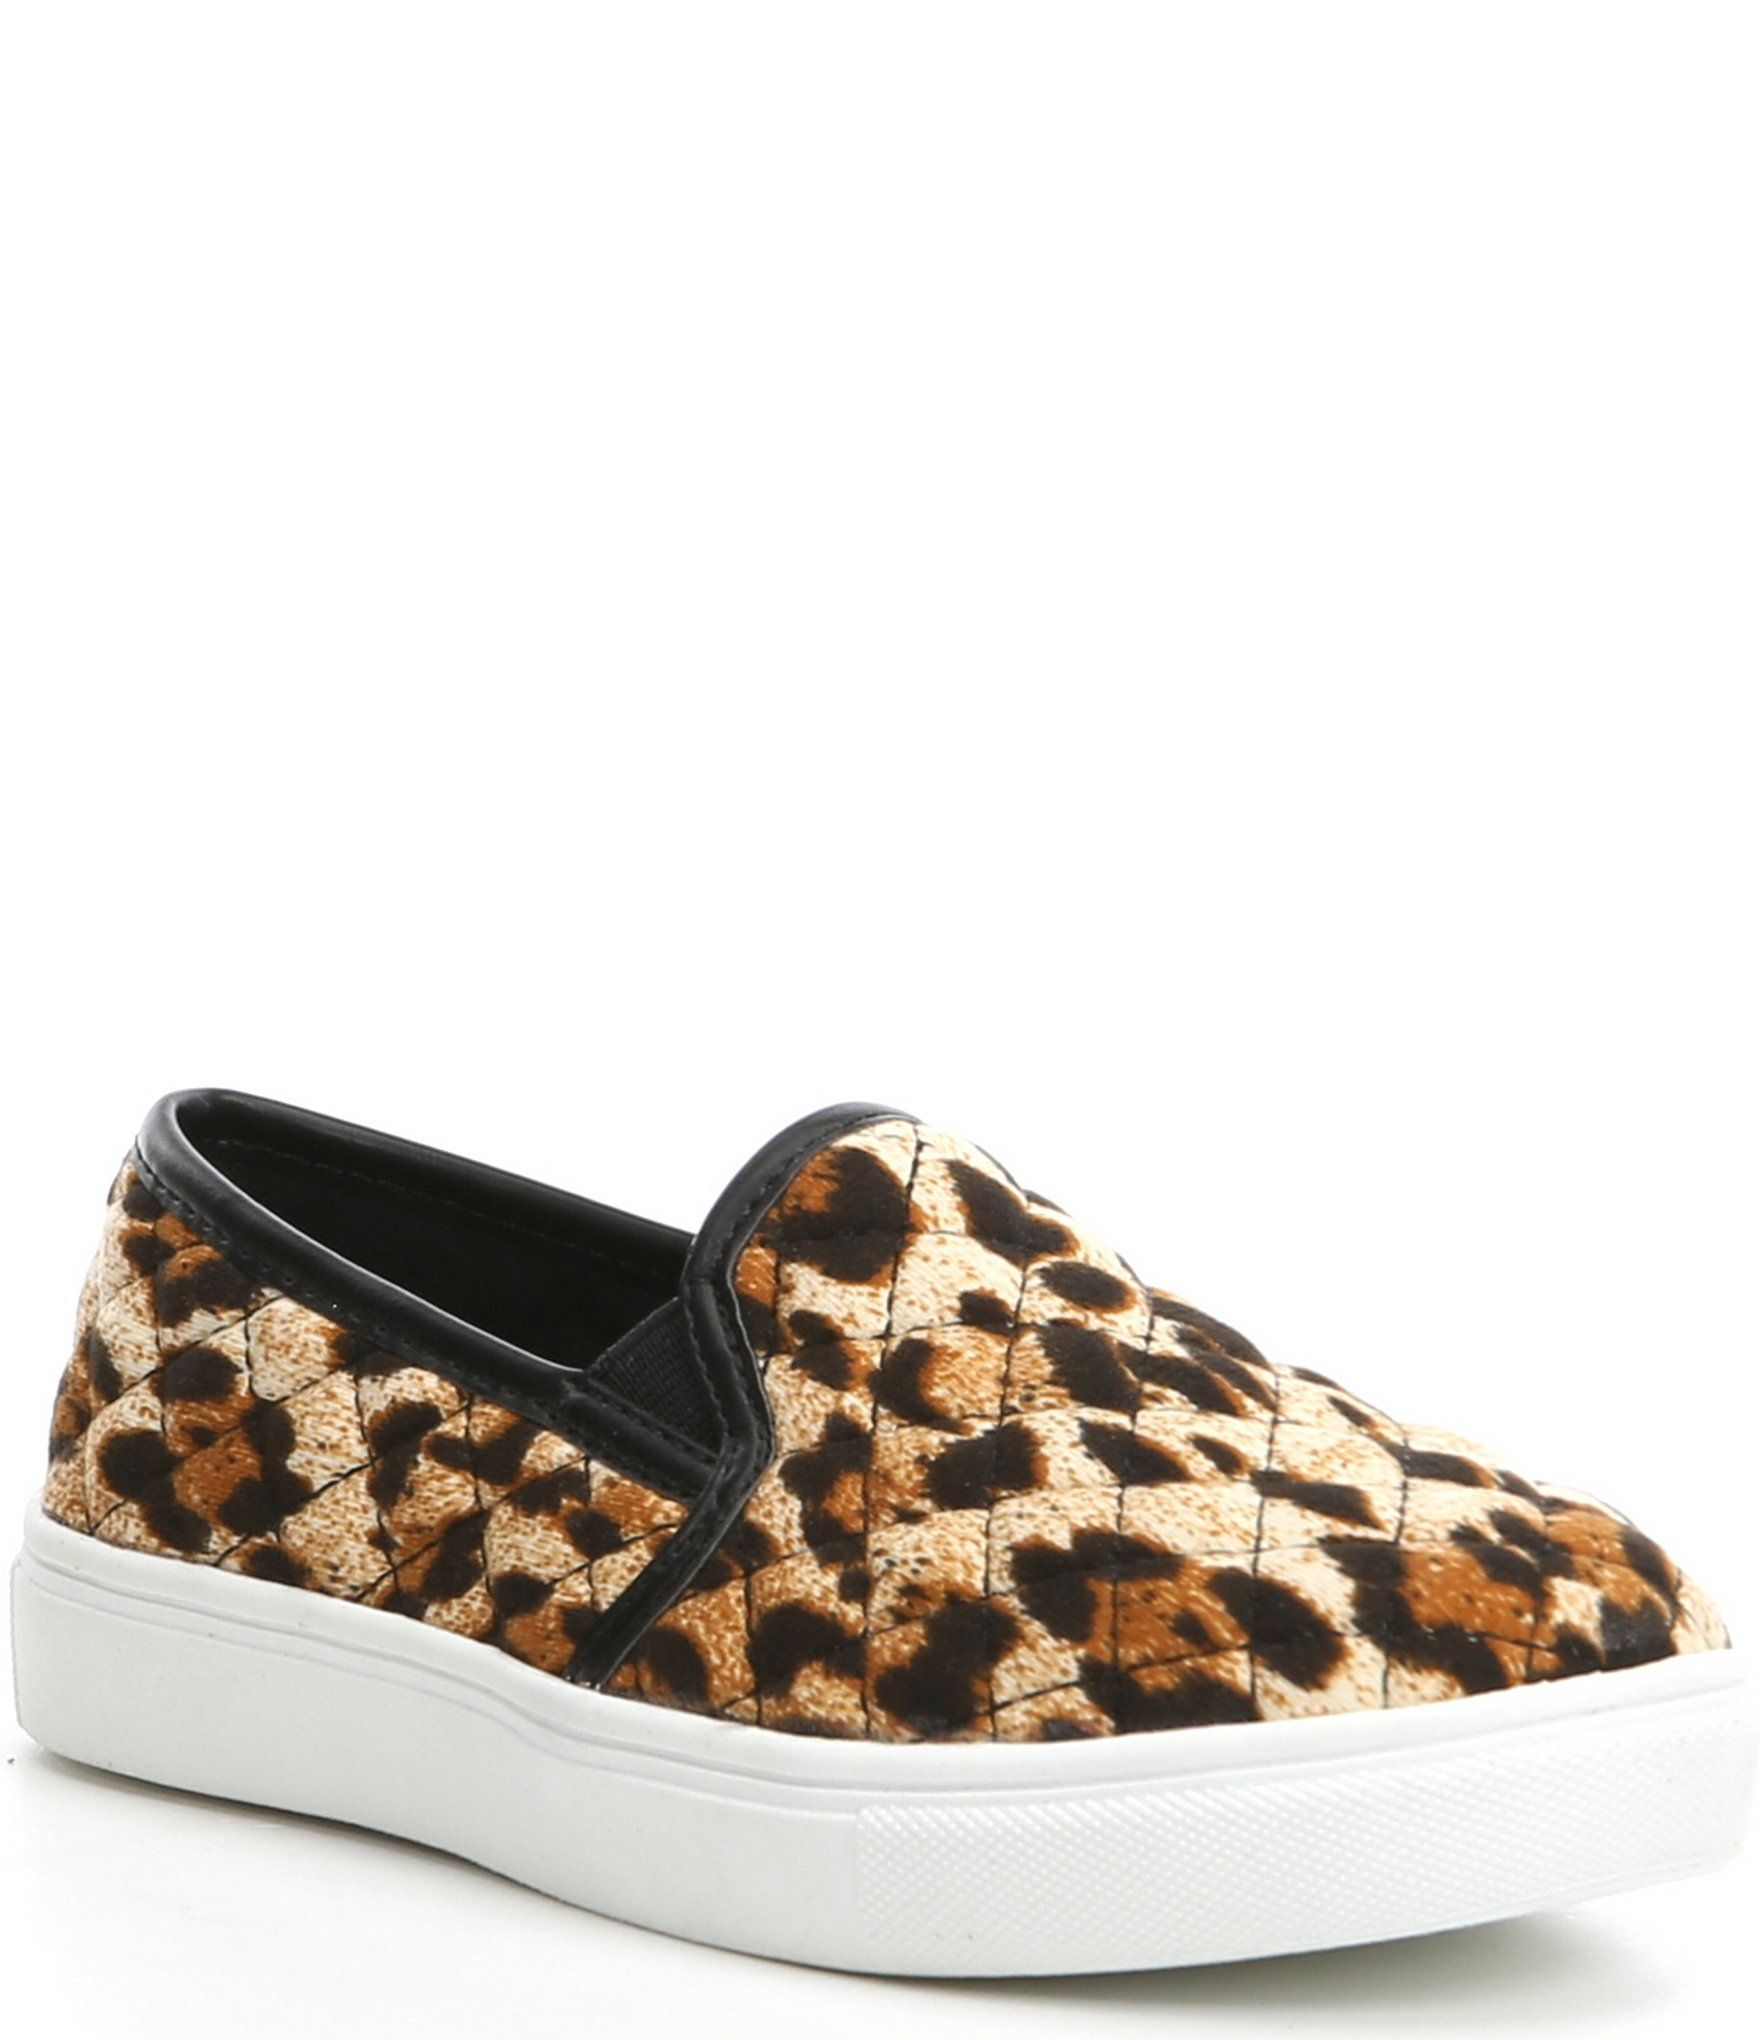 From Steve Madden, the J-Ecentricq girls' shoes feature:quilted synthetic upperslip-on closure for easy on/off padded sock for added comfort synthetic lining TPR outsole Imported.